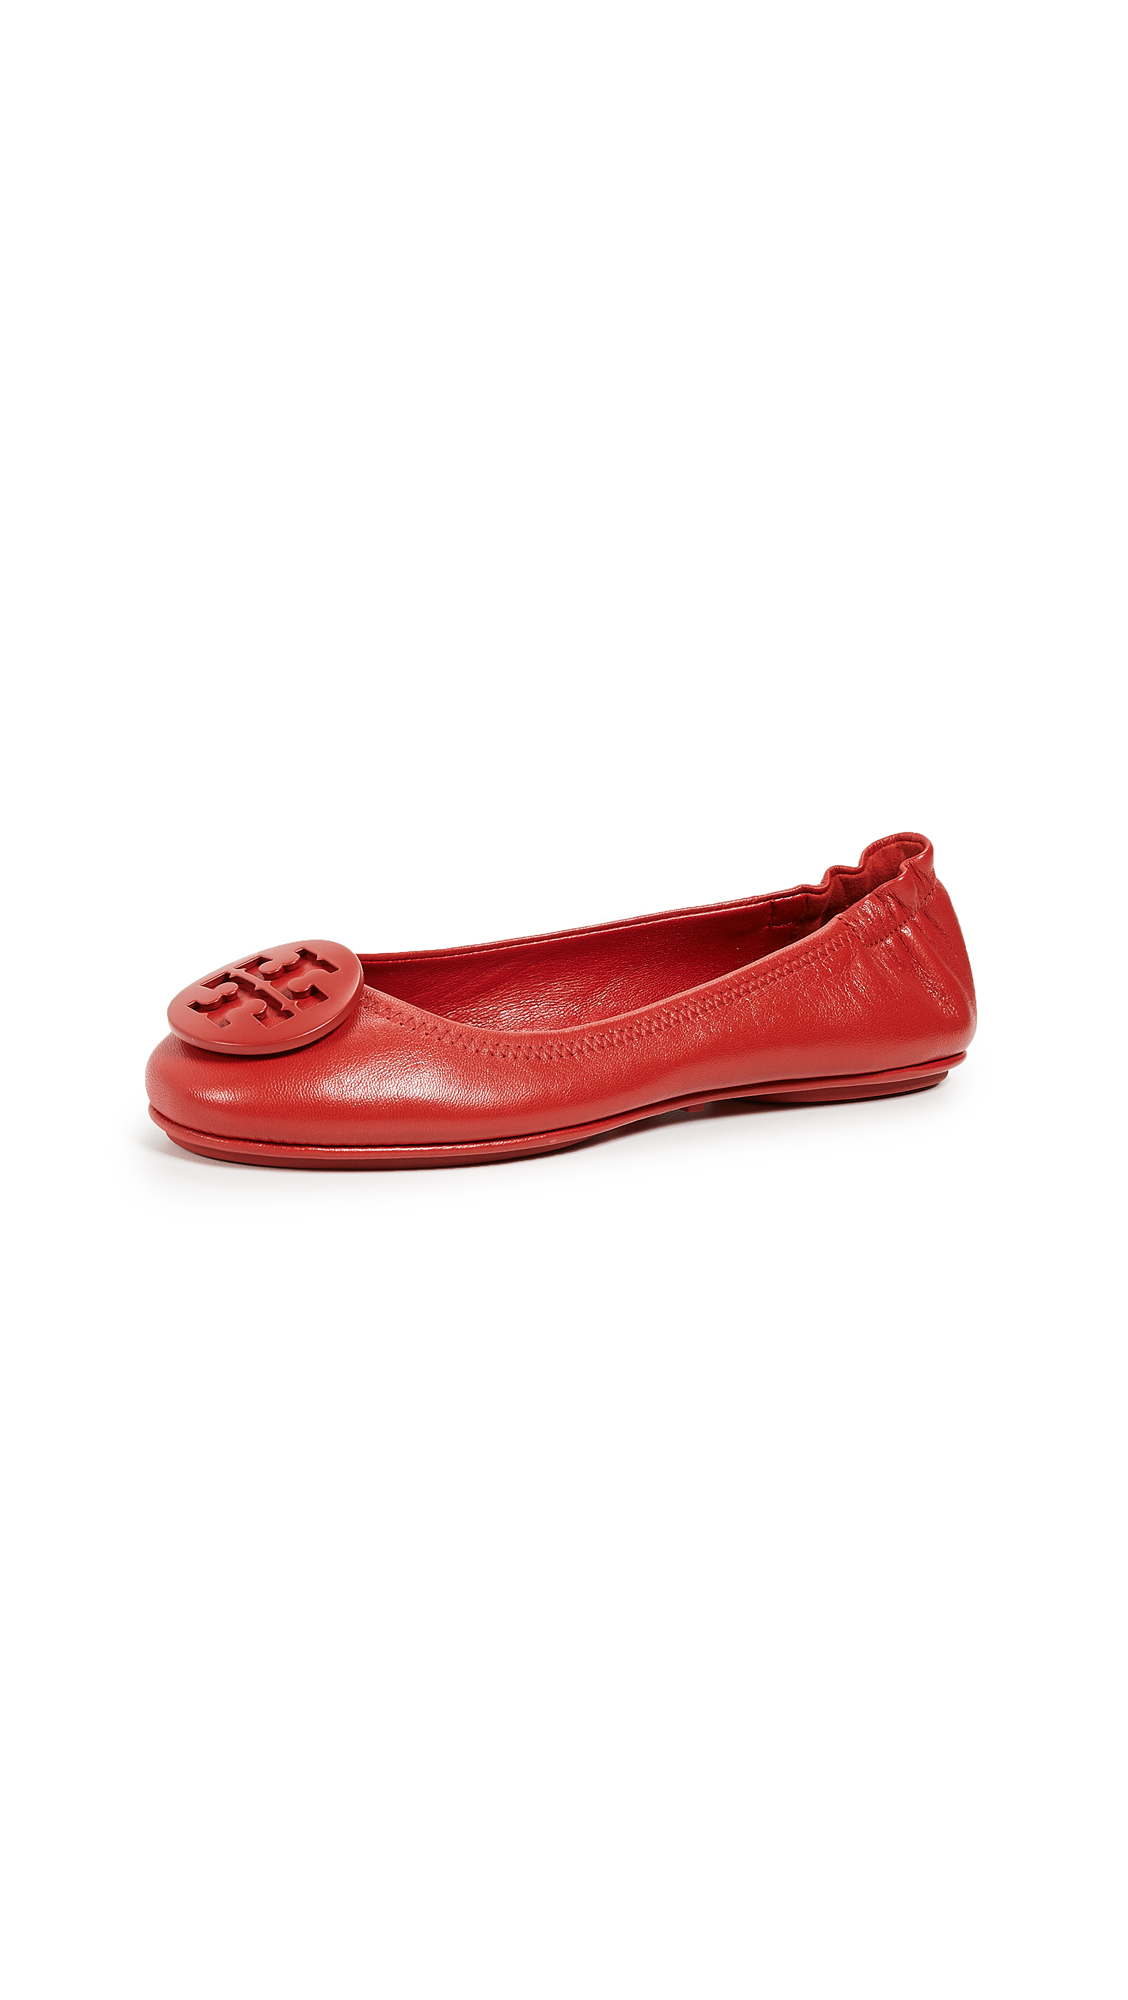 Tory Burch Minnie Travel Ballet Flats - Brilliant Red